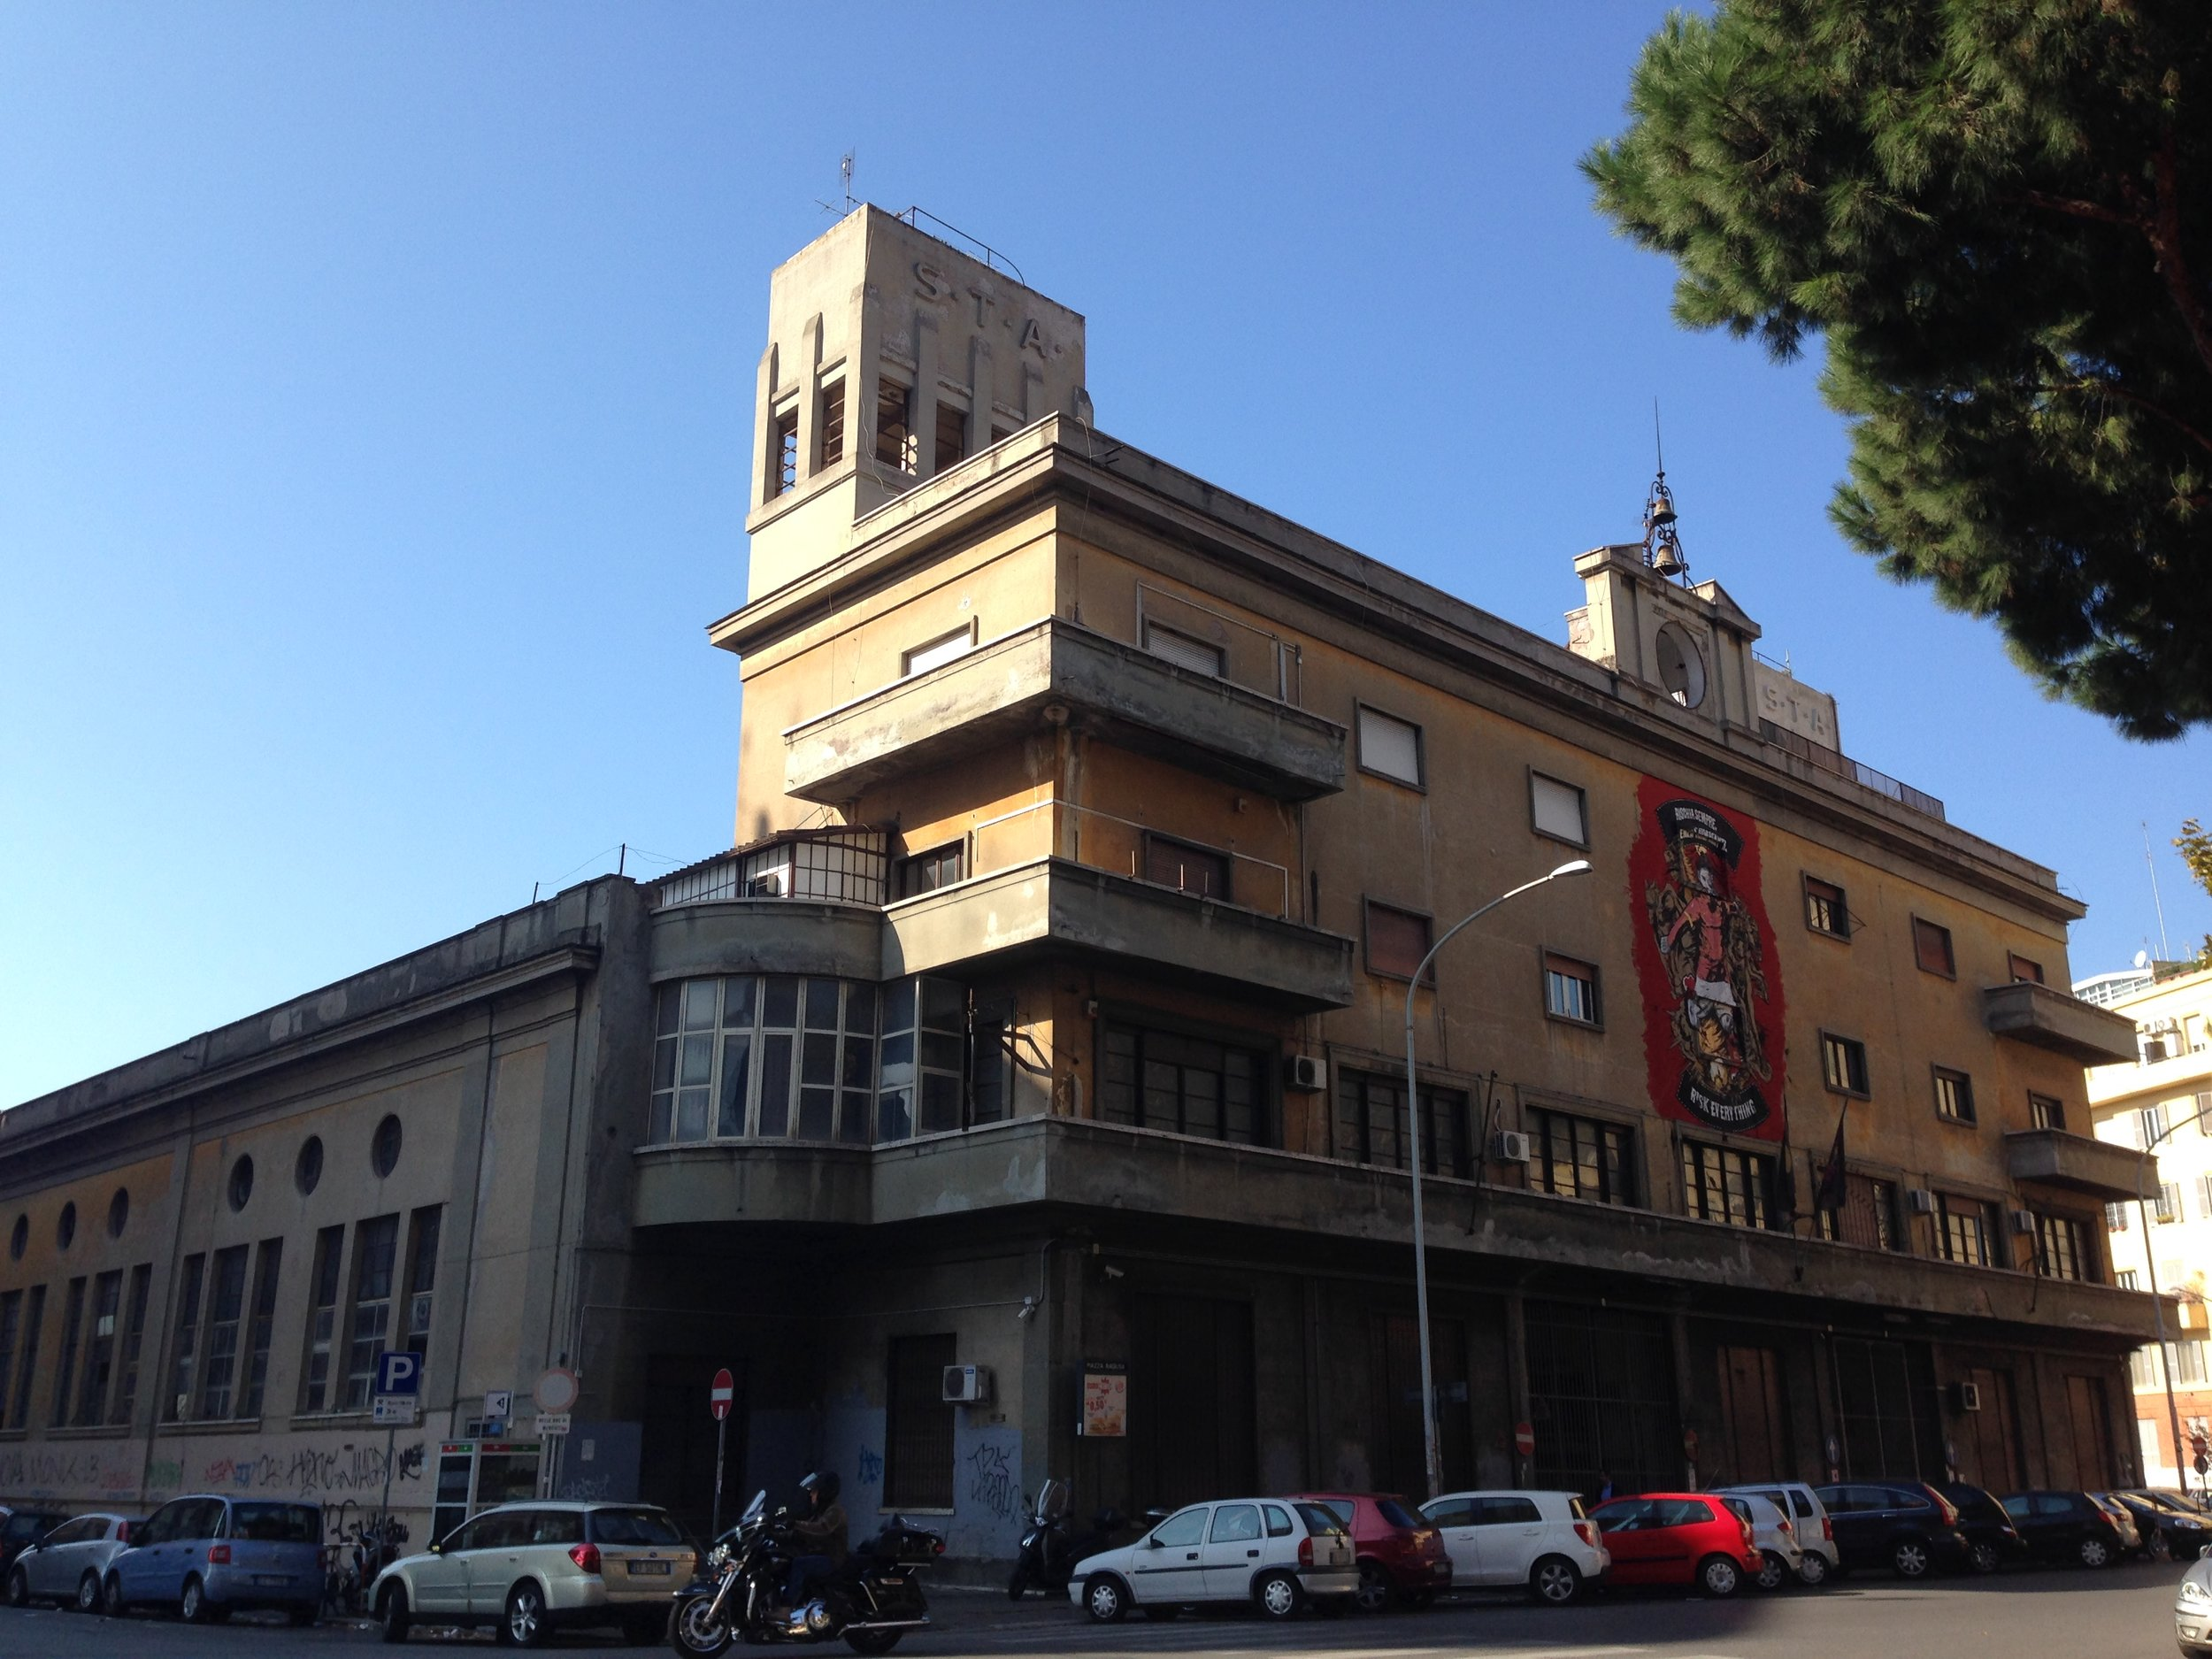 ex-stazione d'atac piazza ragusa | ARchitecture - Longtime derelict despite many conversion projects, this wonderful, almost church-like building of a former 1930's bus depot near Tuscolana station should - hopefully - really turn into a cultural centre at last.